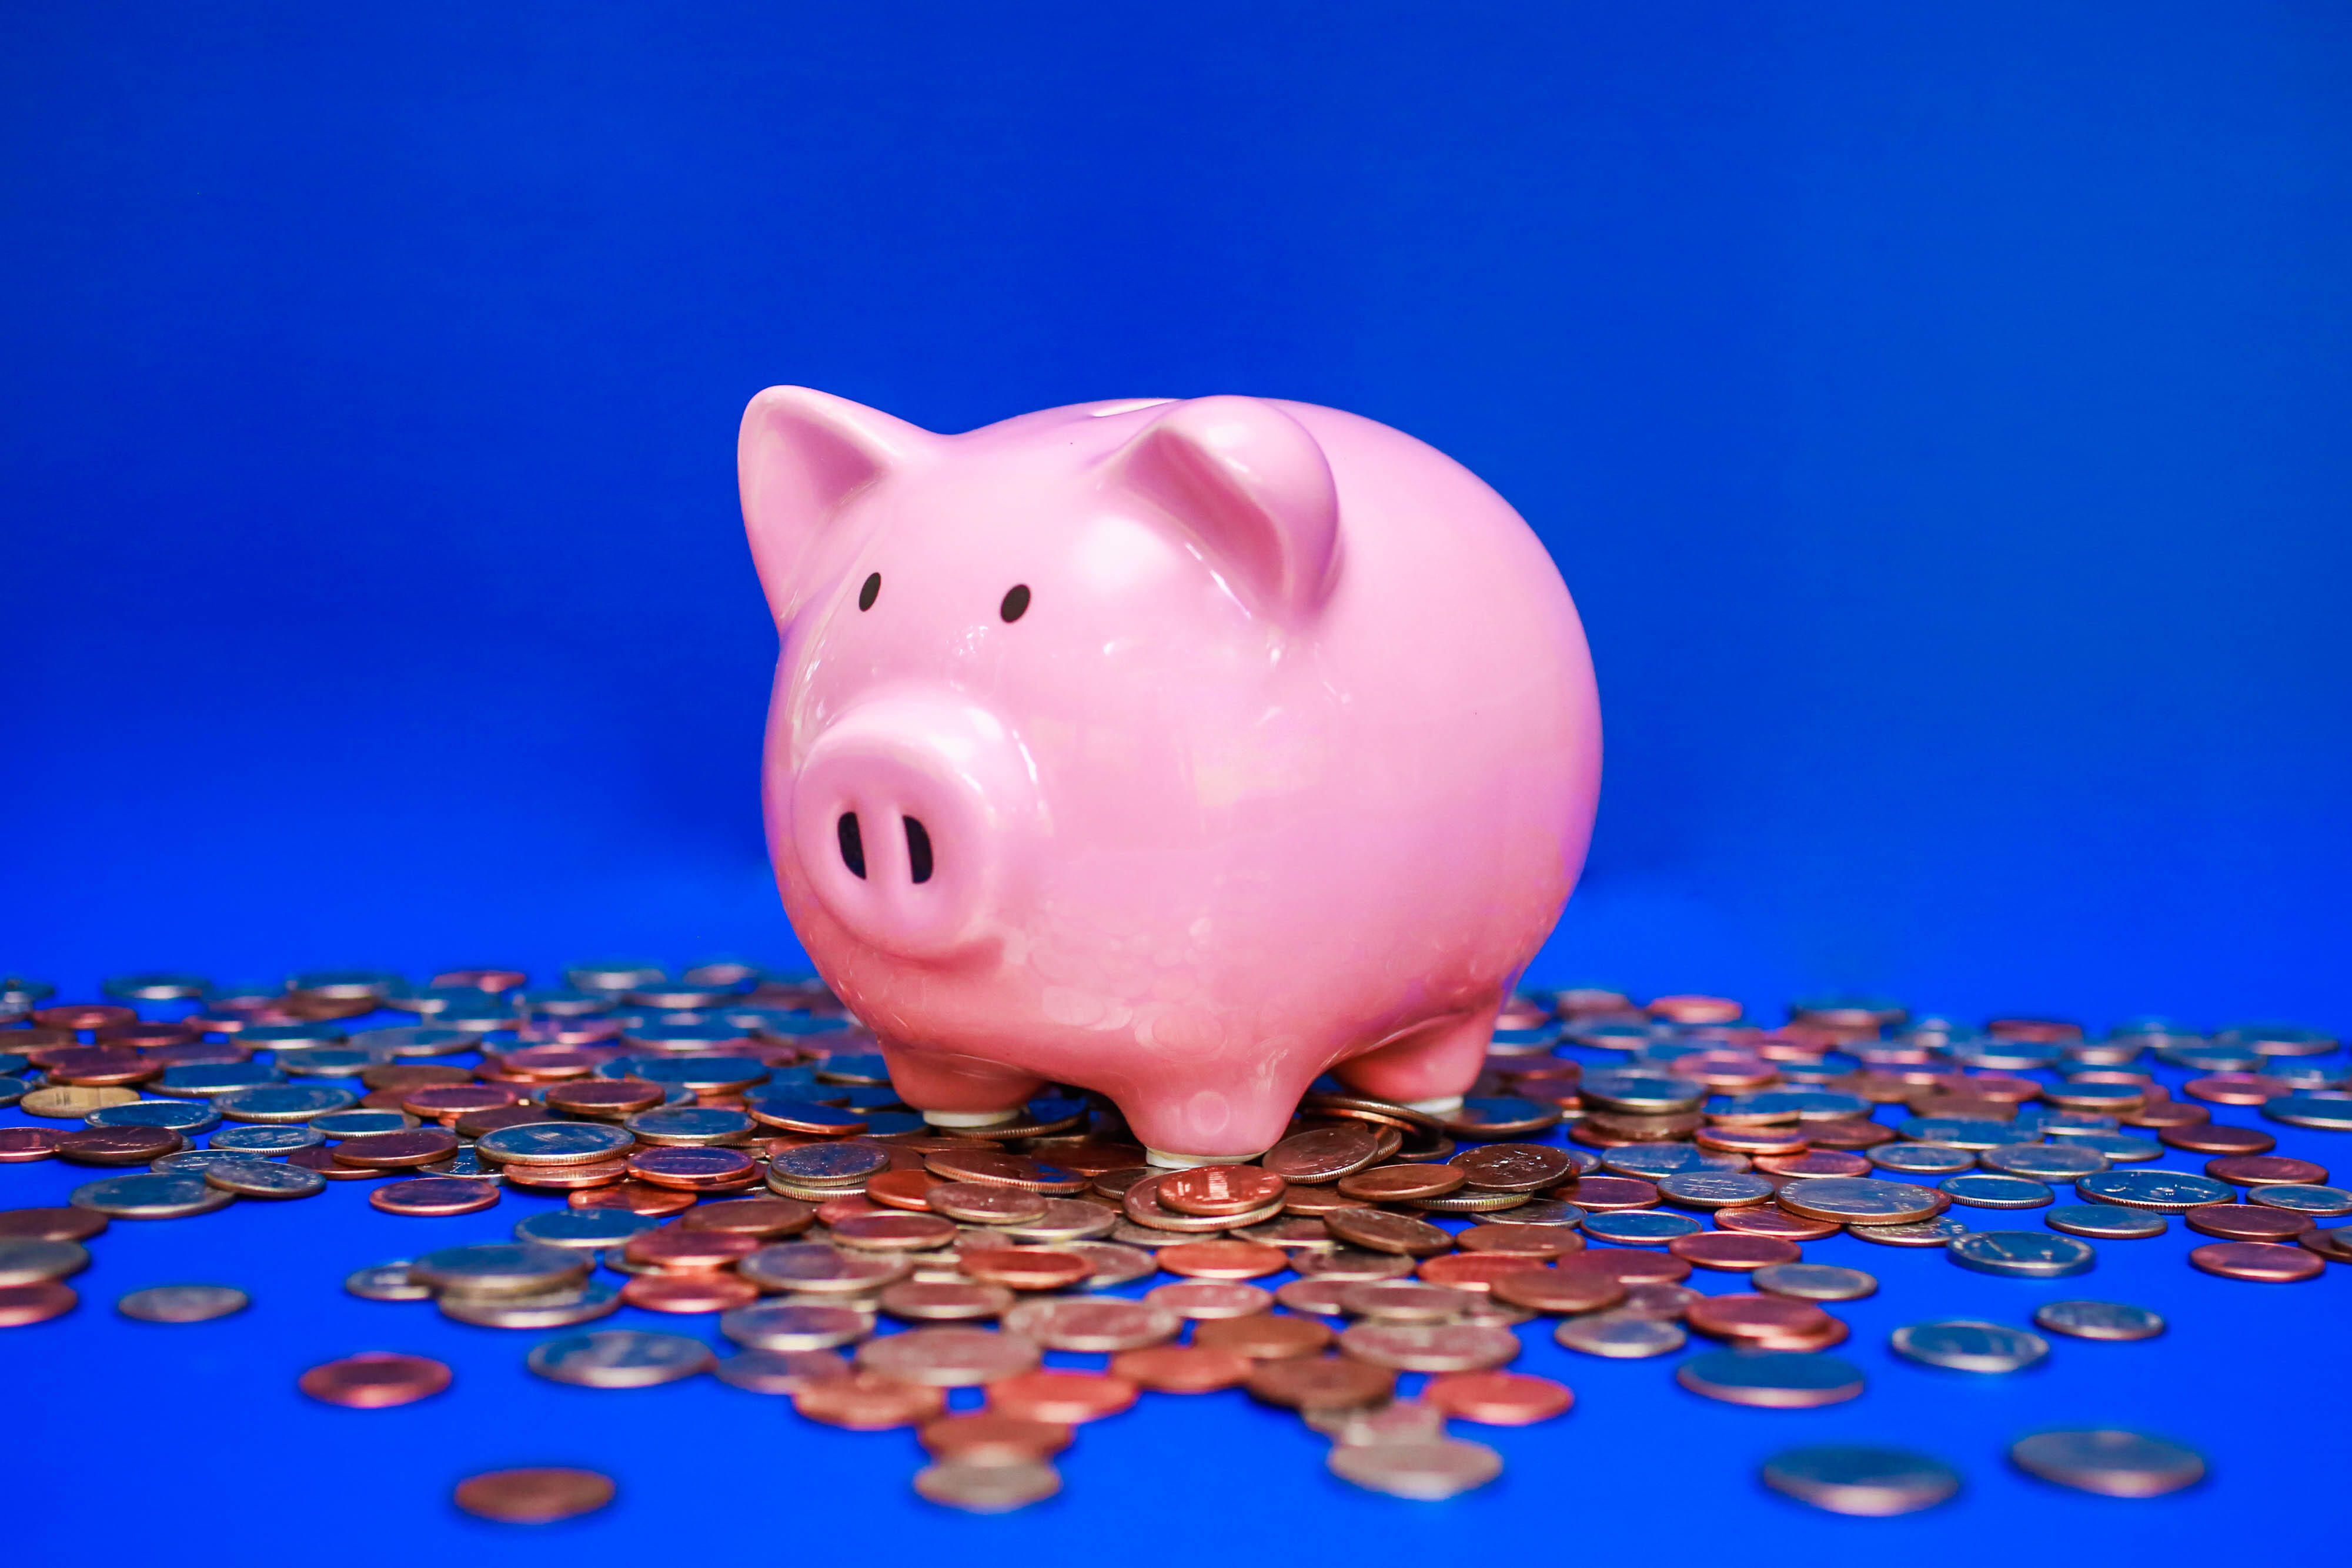 breaking-the-piggy-bank-stimulus-check-cash-money-savings-debt-personal-finance-021